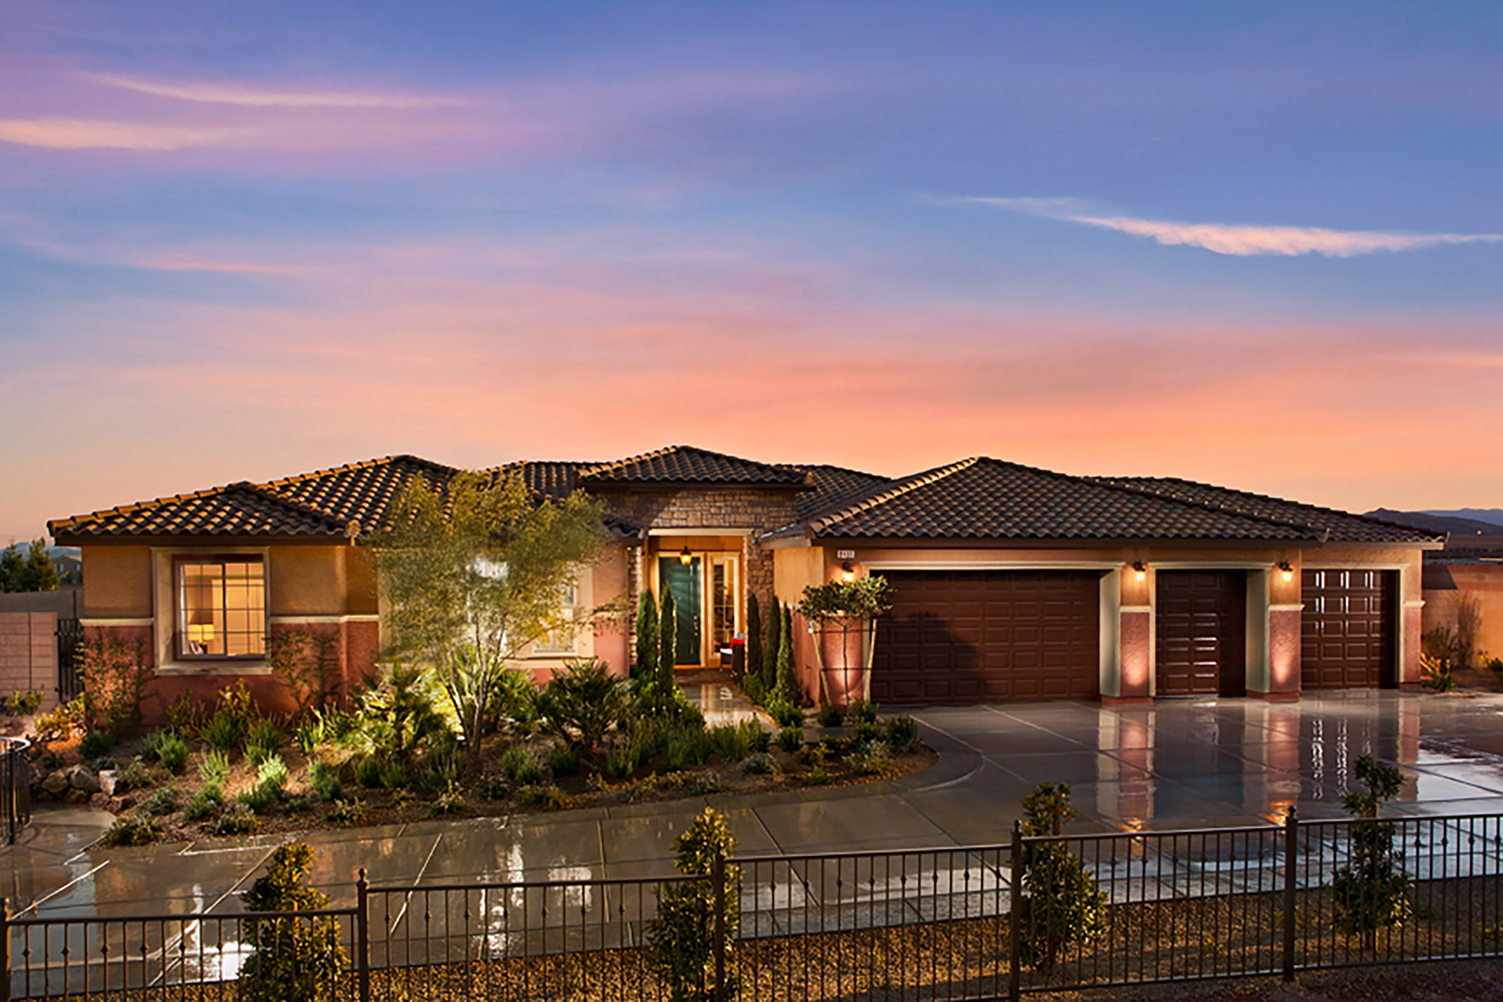 4Bed 3Bath 4Car Garage ONE STORY 3,597Sq Ft Home For